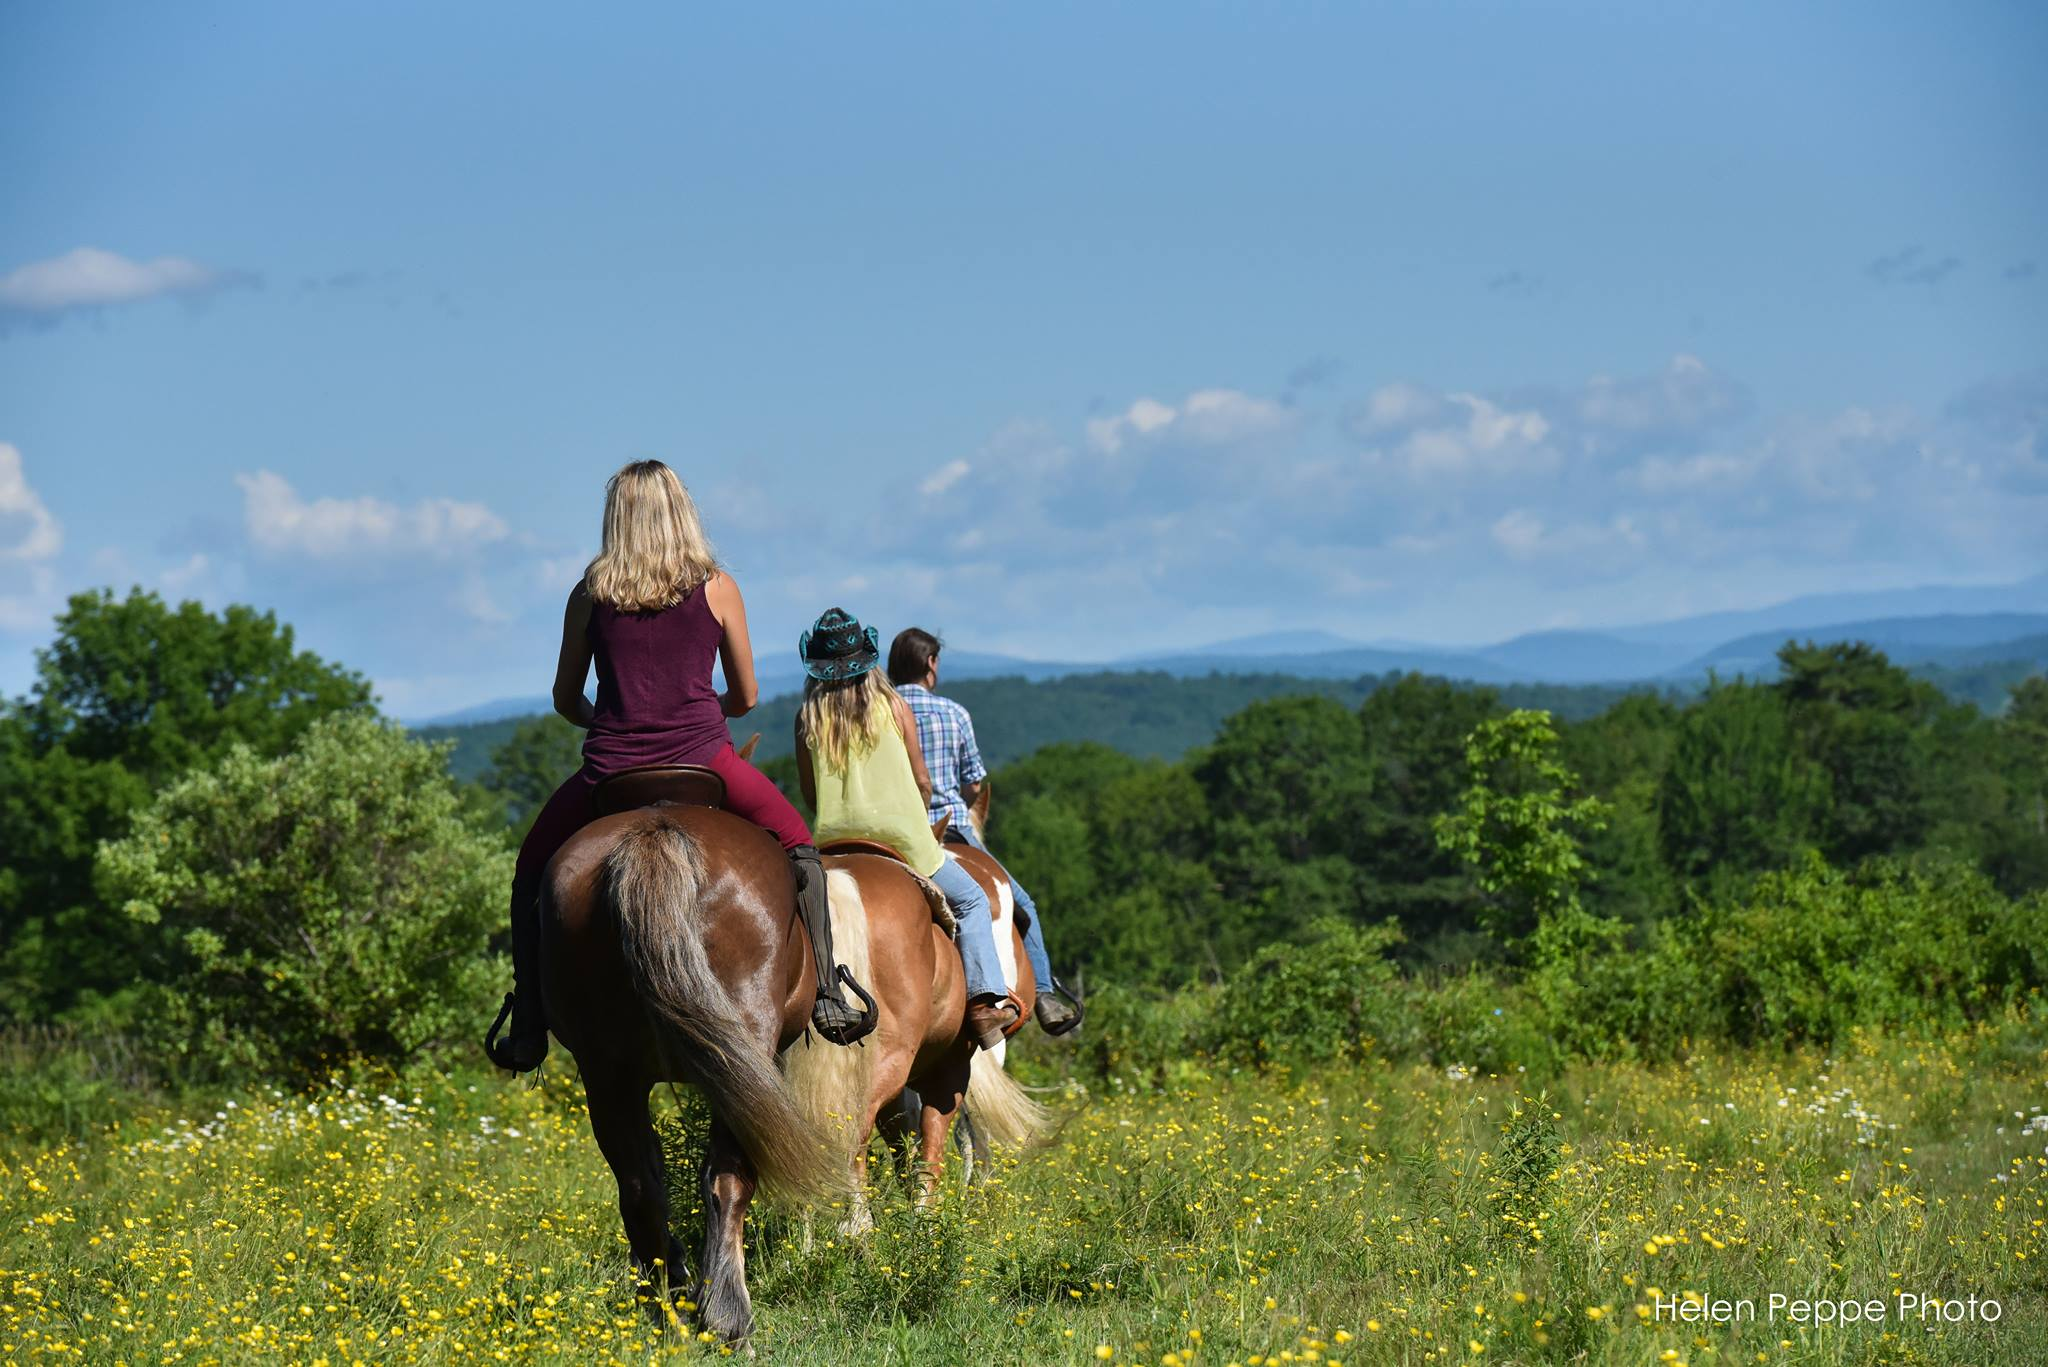 The Best Horseback Riding in Maine